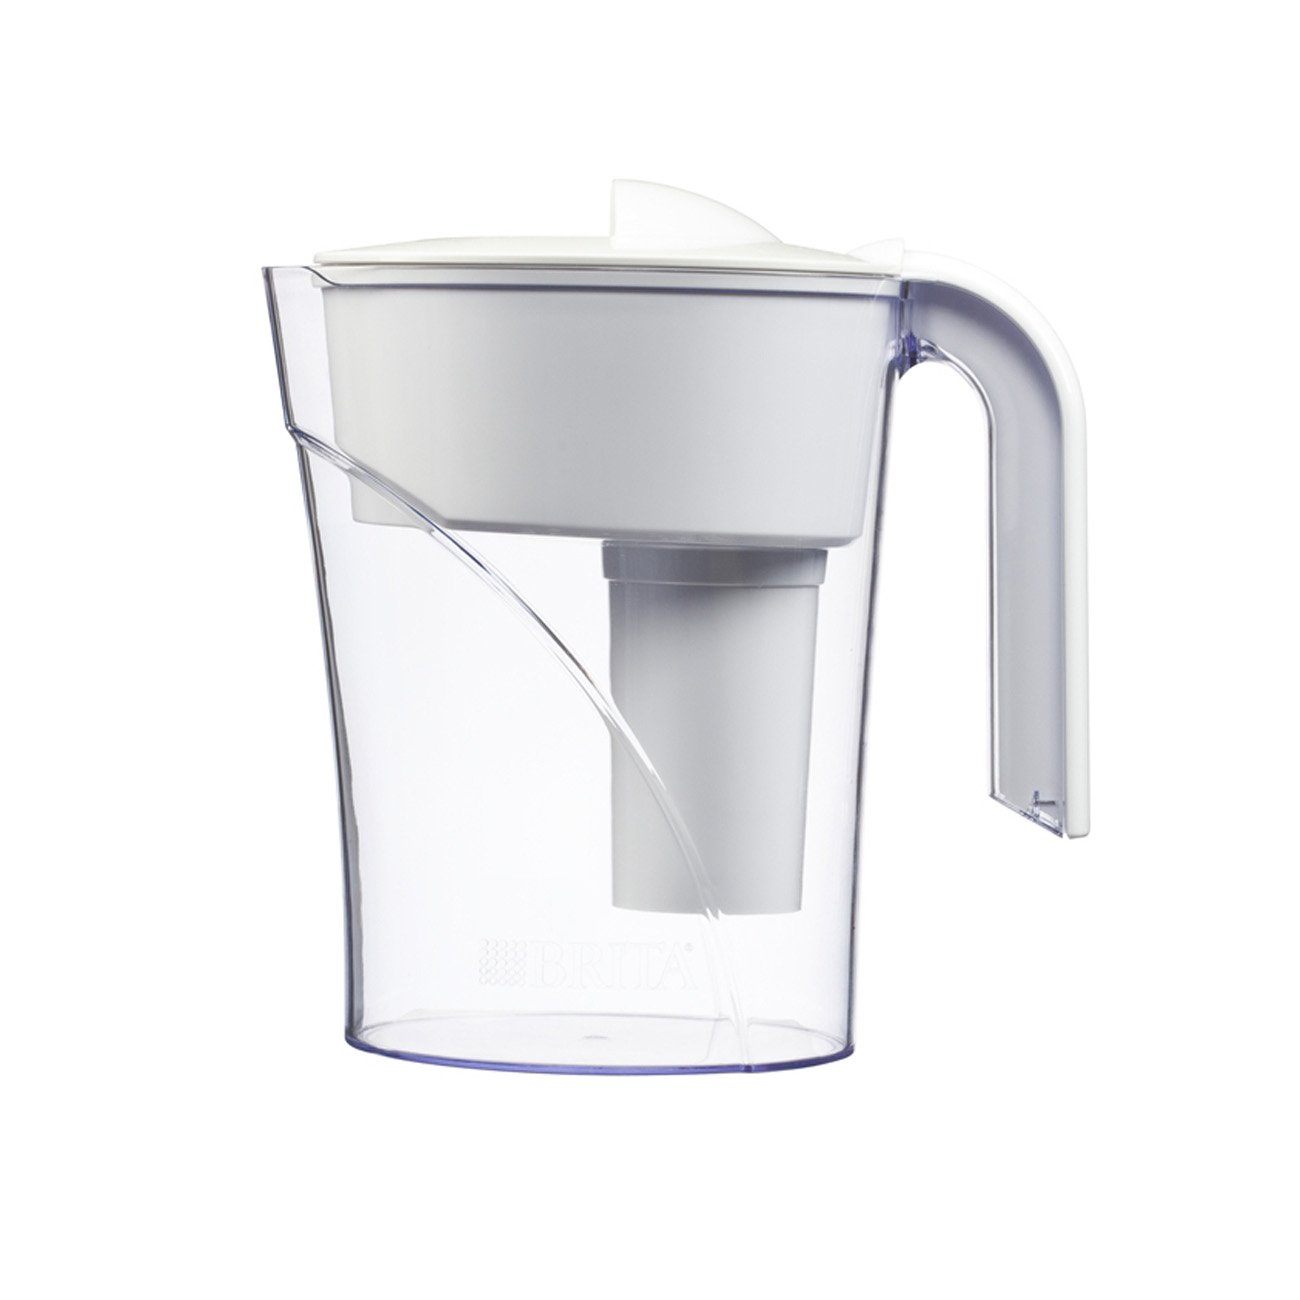 brita 6 cup classic water filter pitcher white new. Black Bedroom Furniture Sets. Home Design Ideas